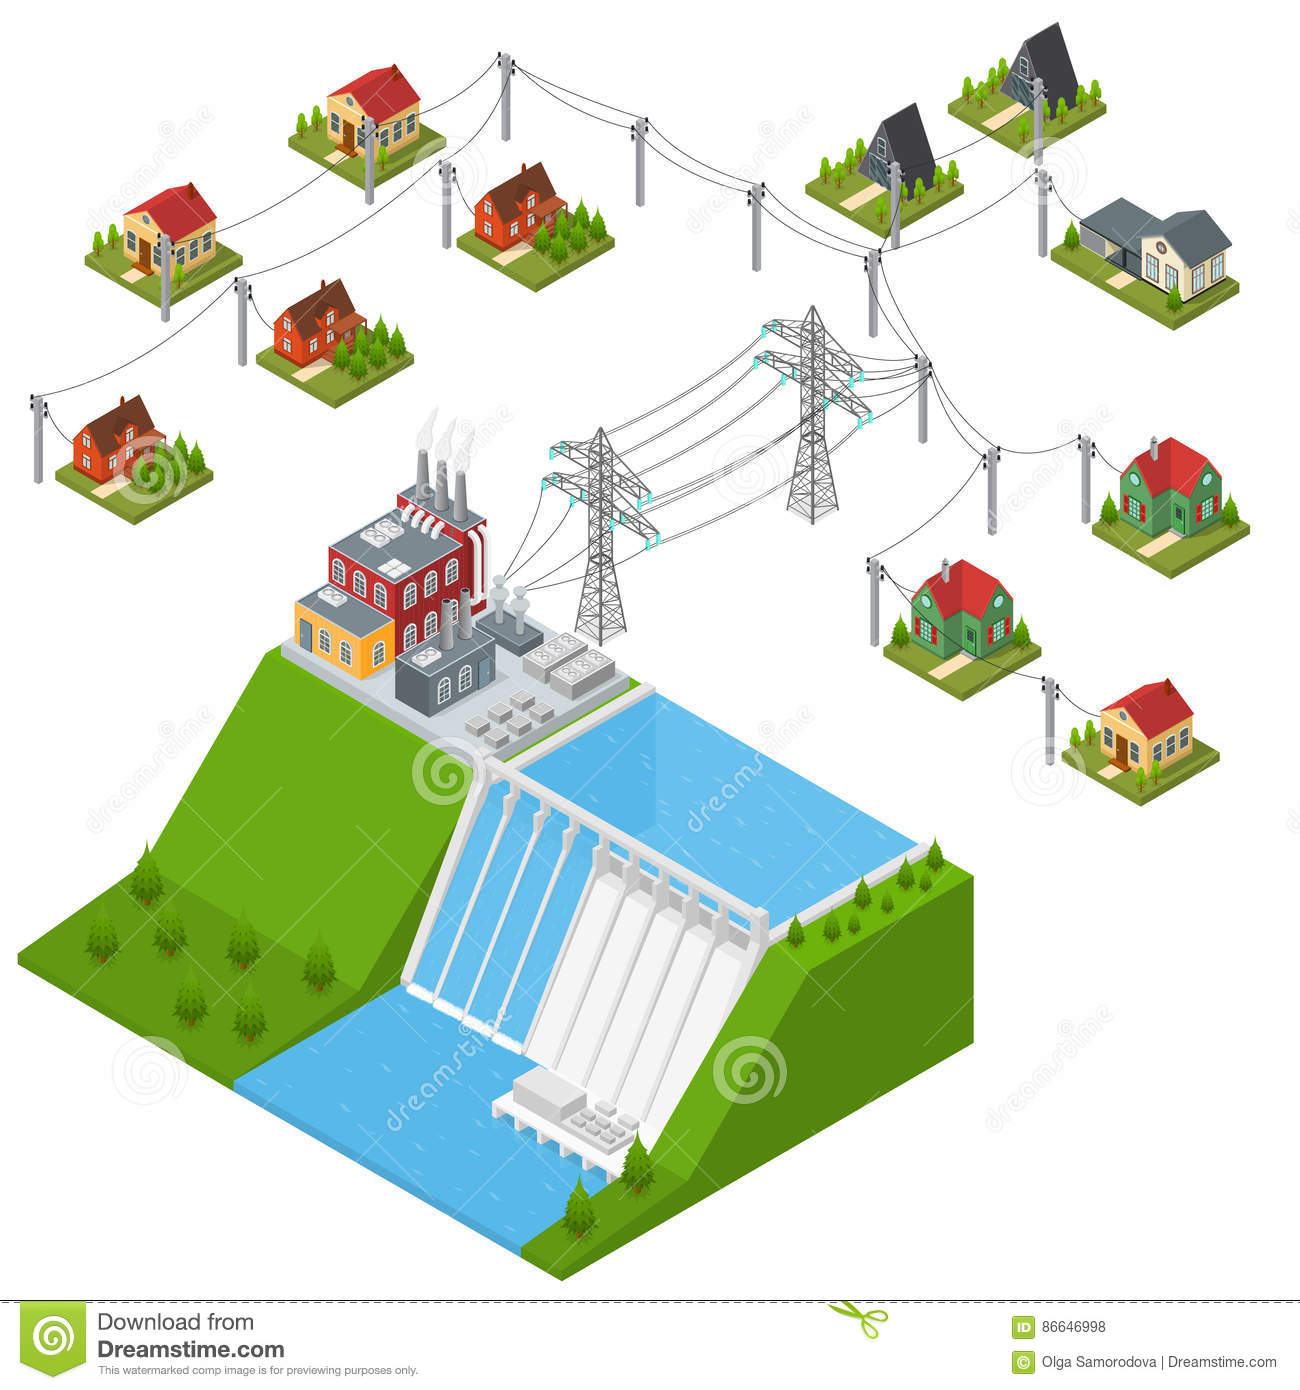 hight resolution of hydroelectricity power station isometric view alternative energy concept dam on the river with houses and building transmission structure